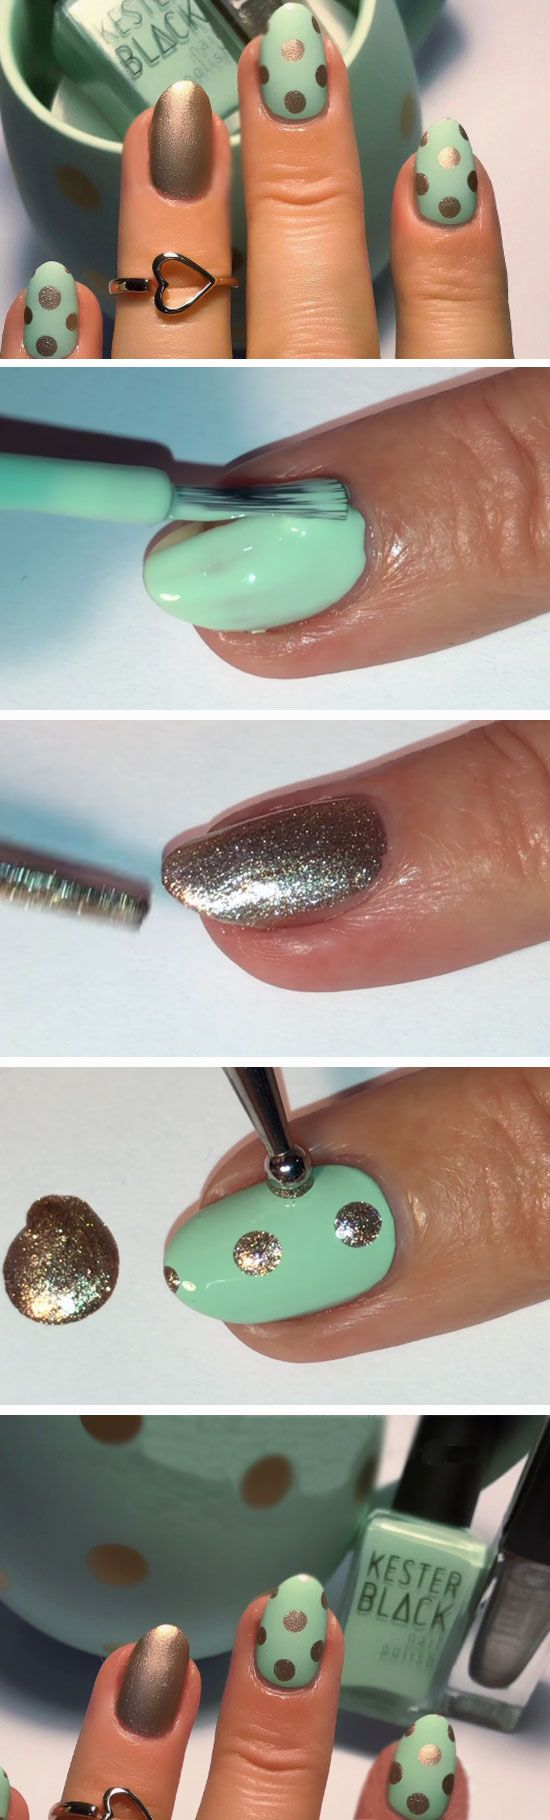 Minty Perfect Match | Easy Spring Nail Designs for Short Nails | DIY Beach Nail Art Ideas for Teens